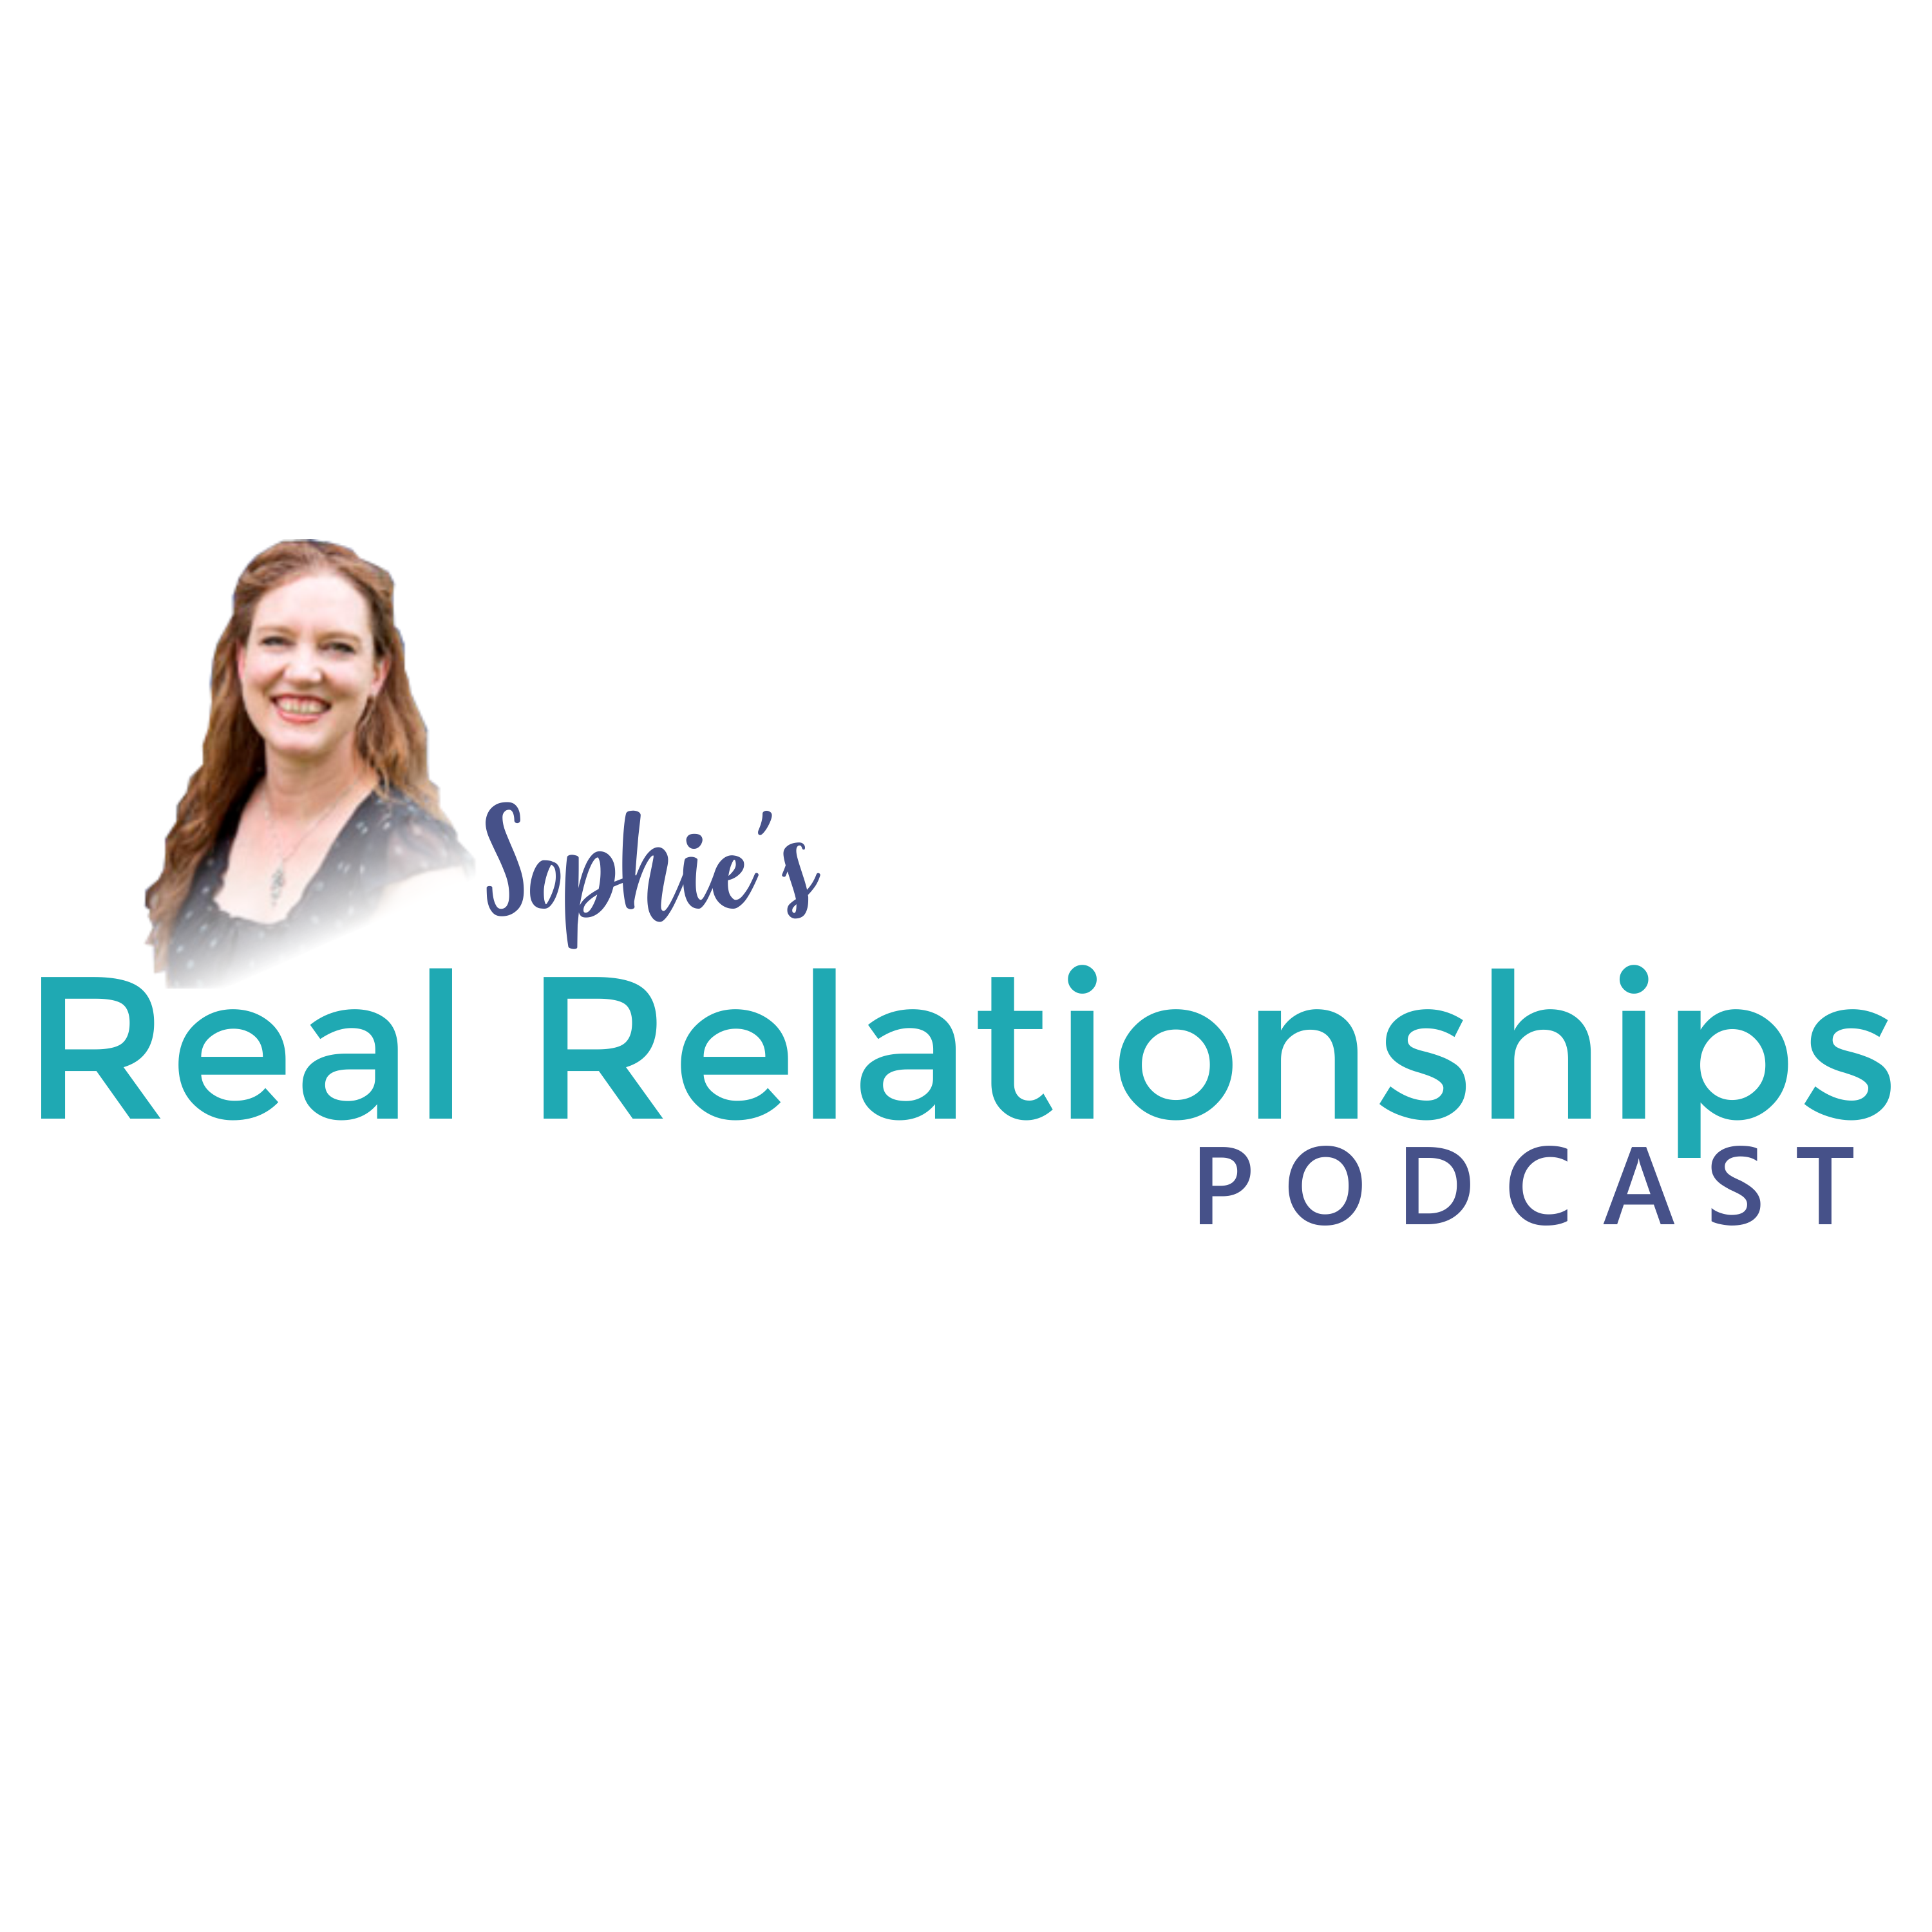 Sophie's Real Relationships Podcast show art